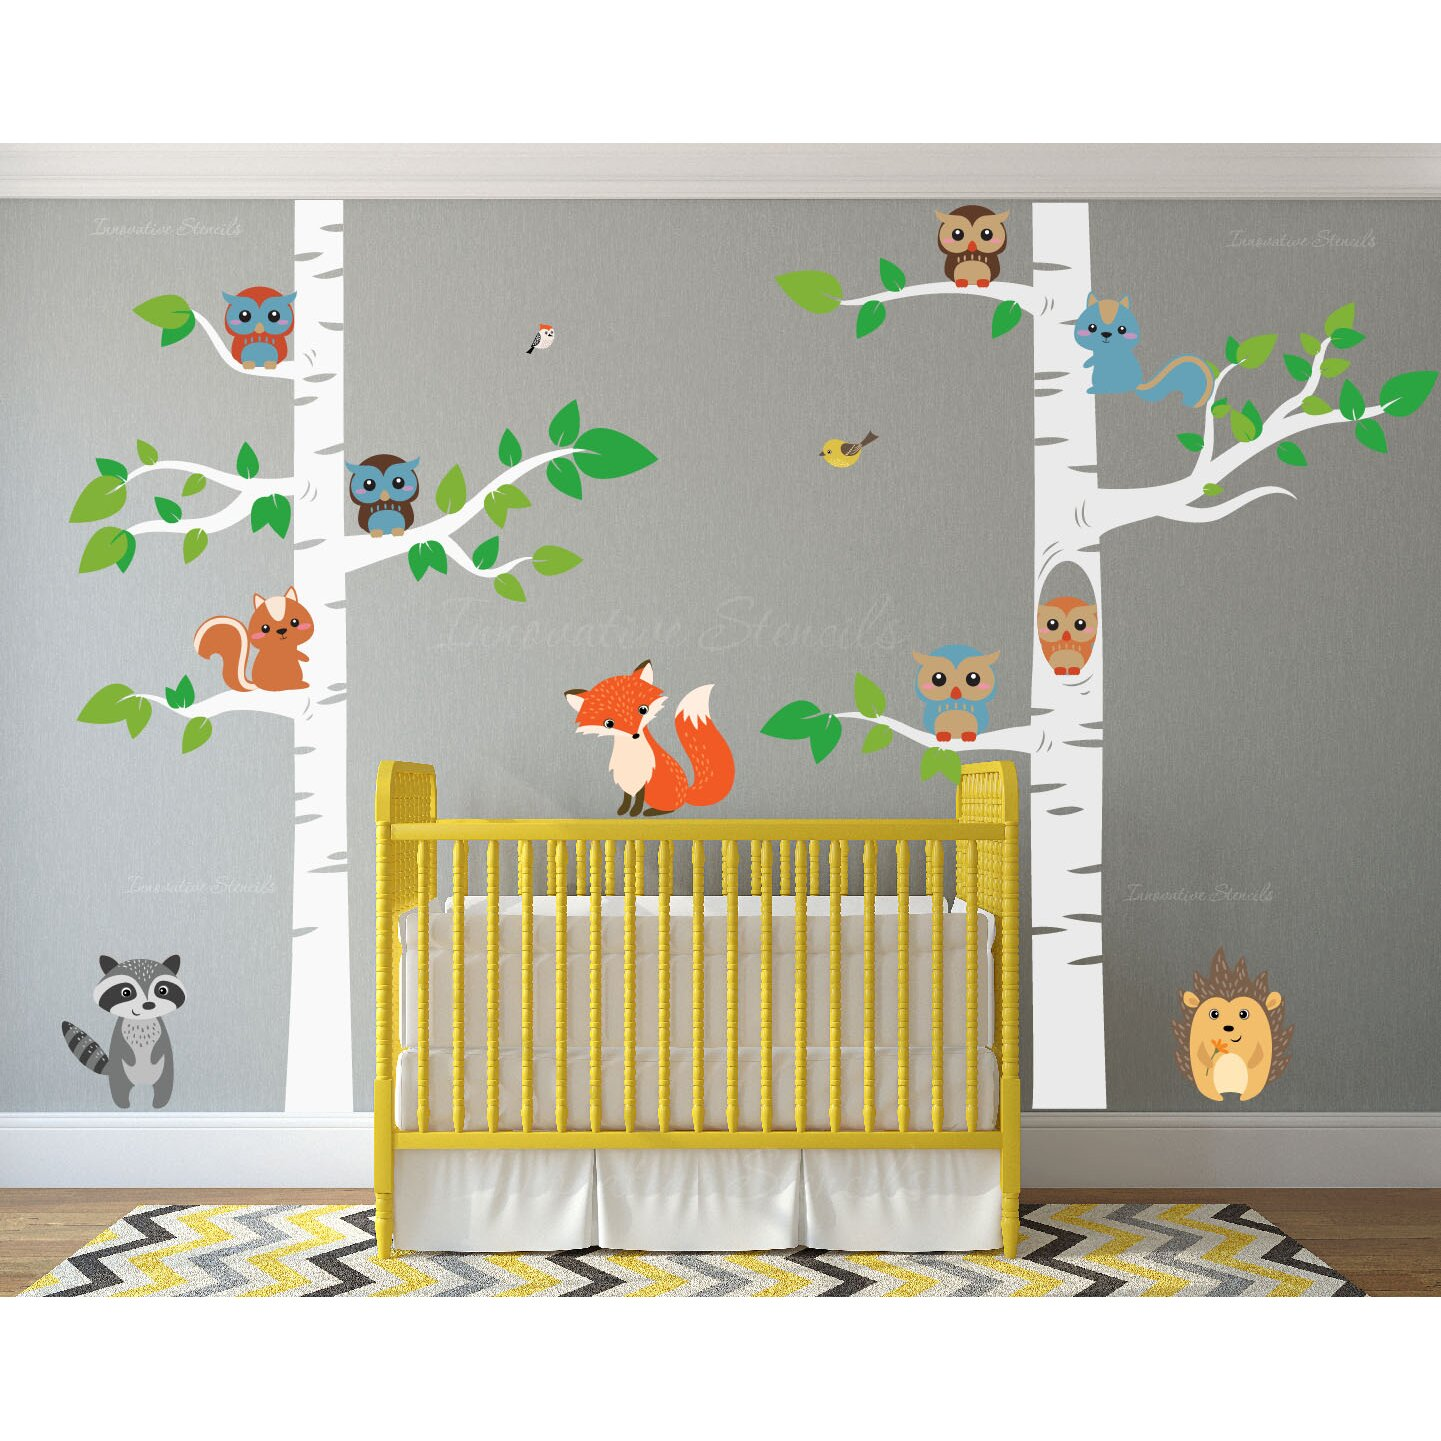 Innovative Stencils 12 Piece Birch Tree Nursery Wall Decal